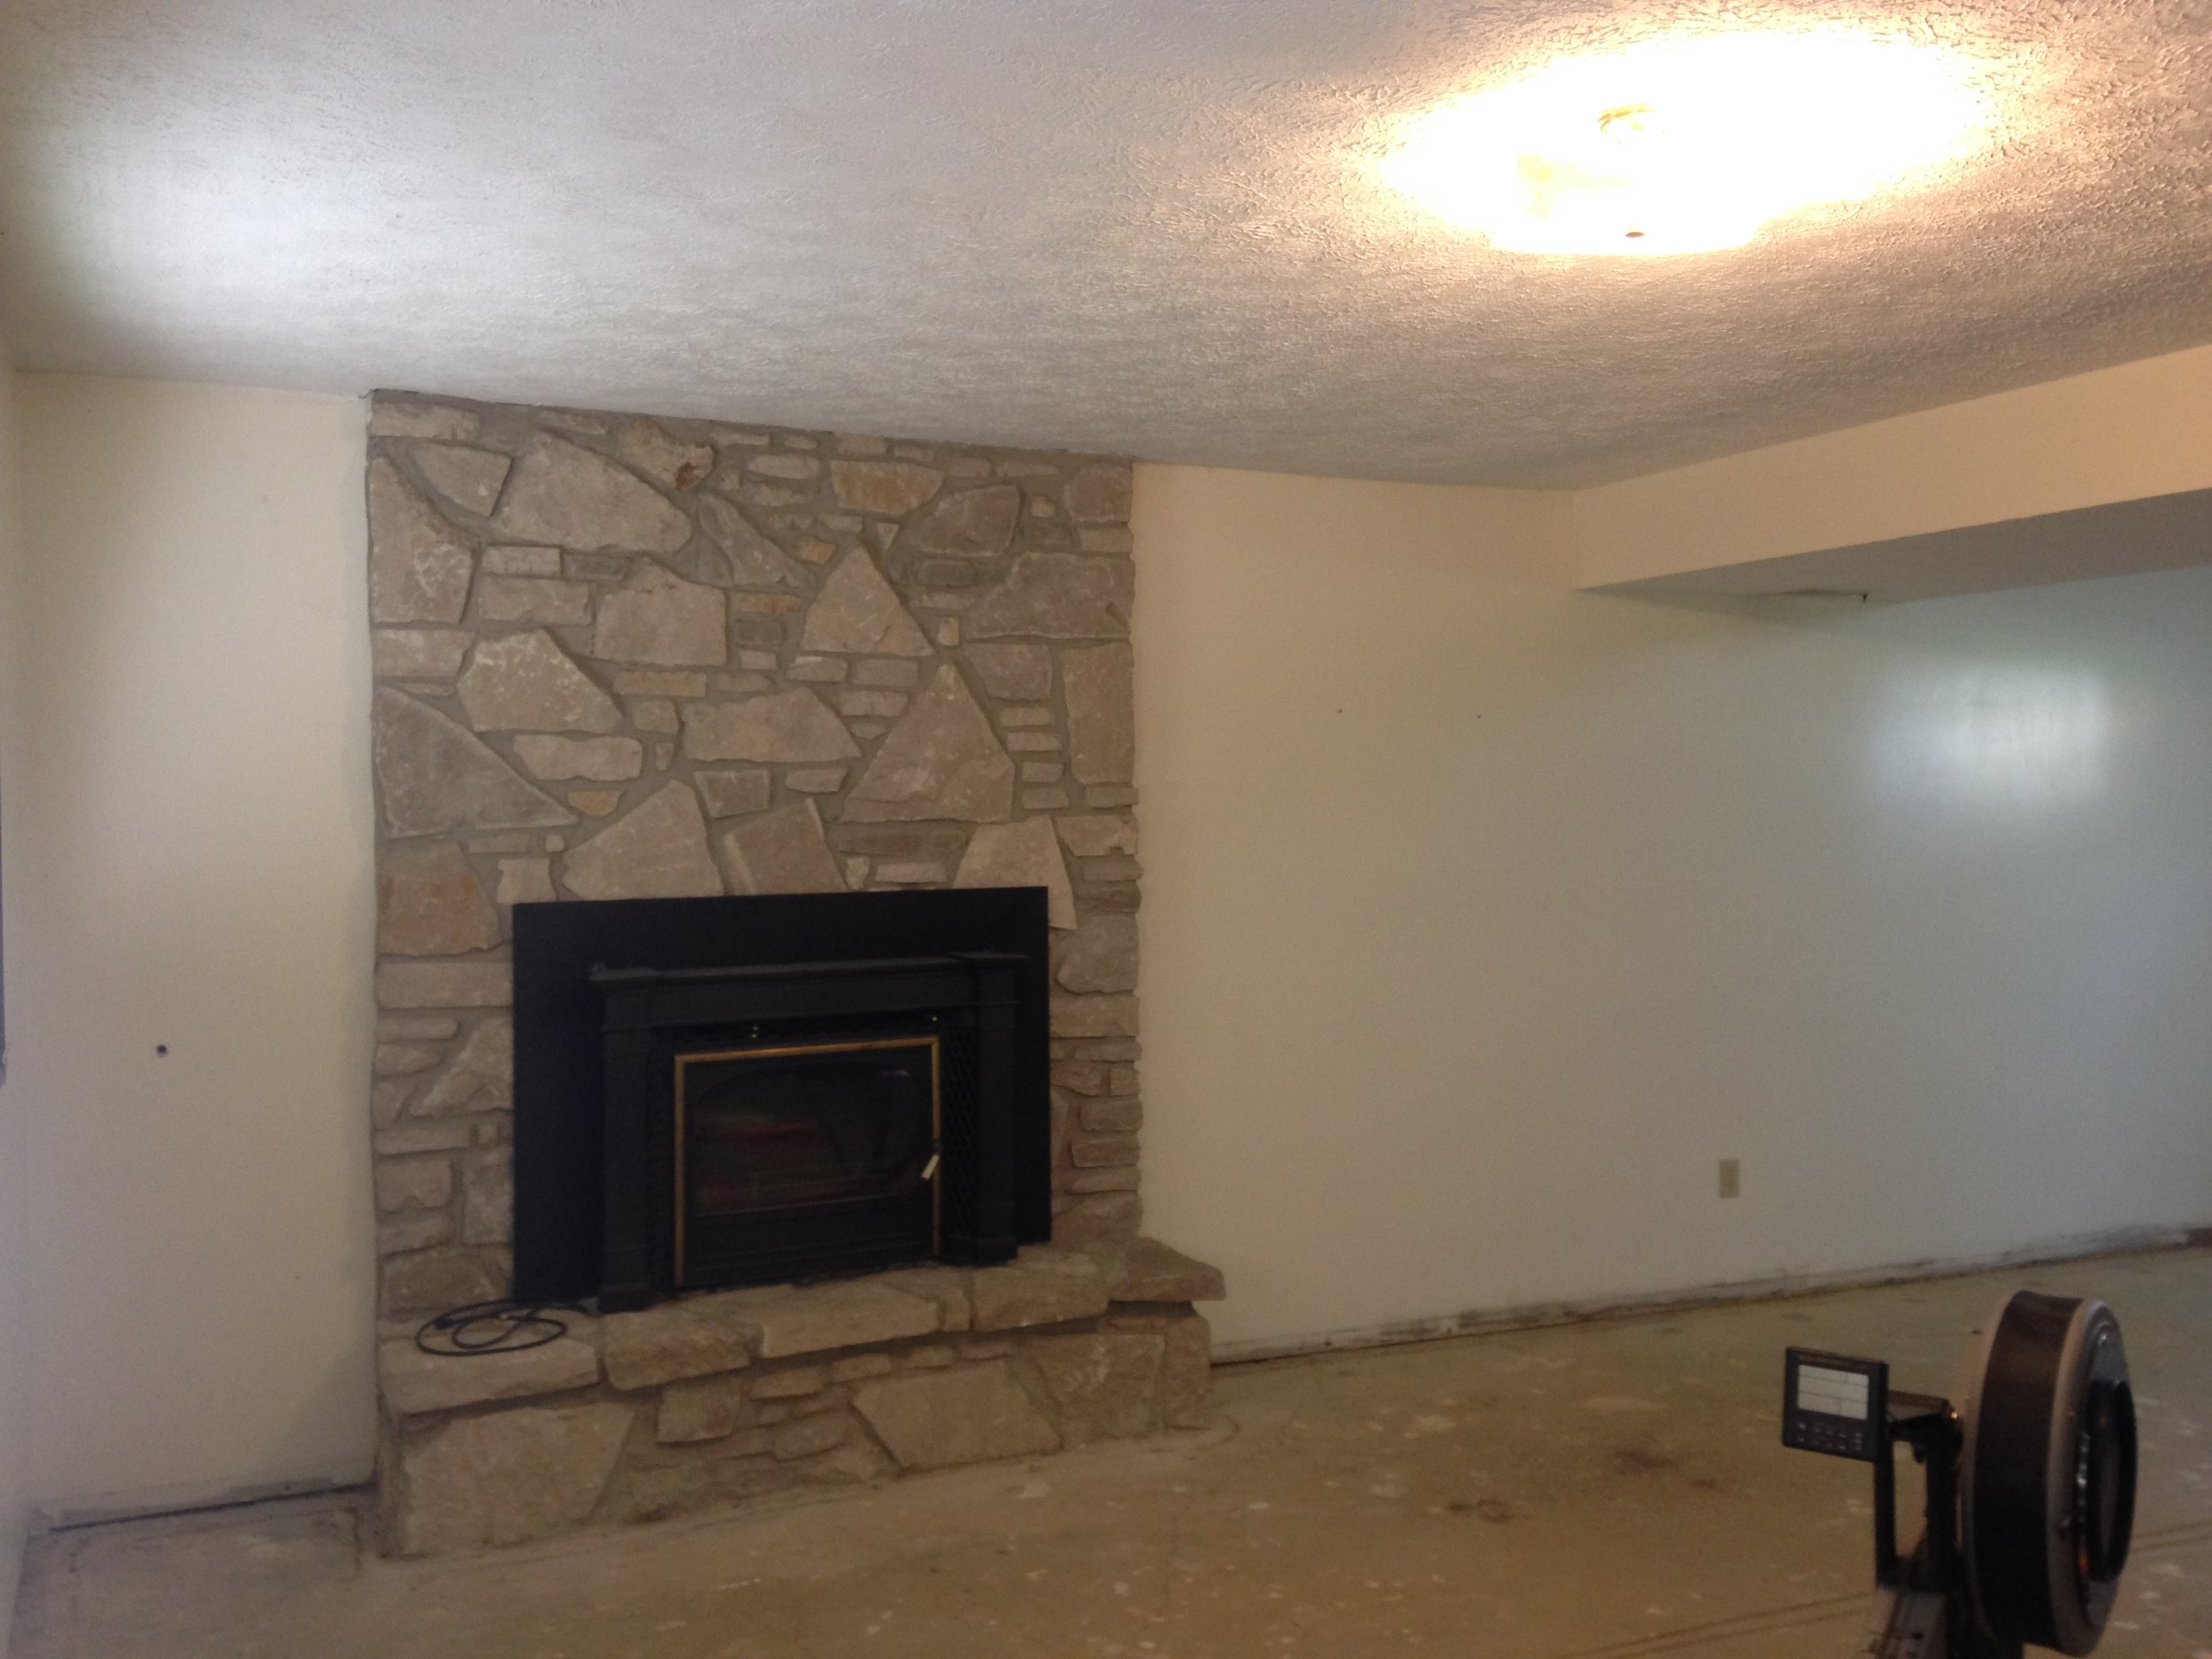 Before. Your standard lower-level, bi-level family room. Complete with the fireplace.